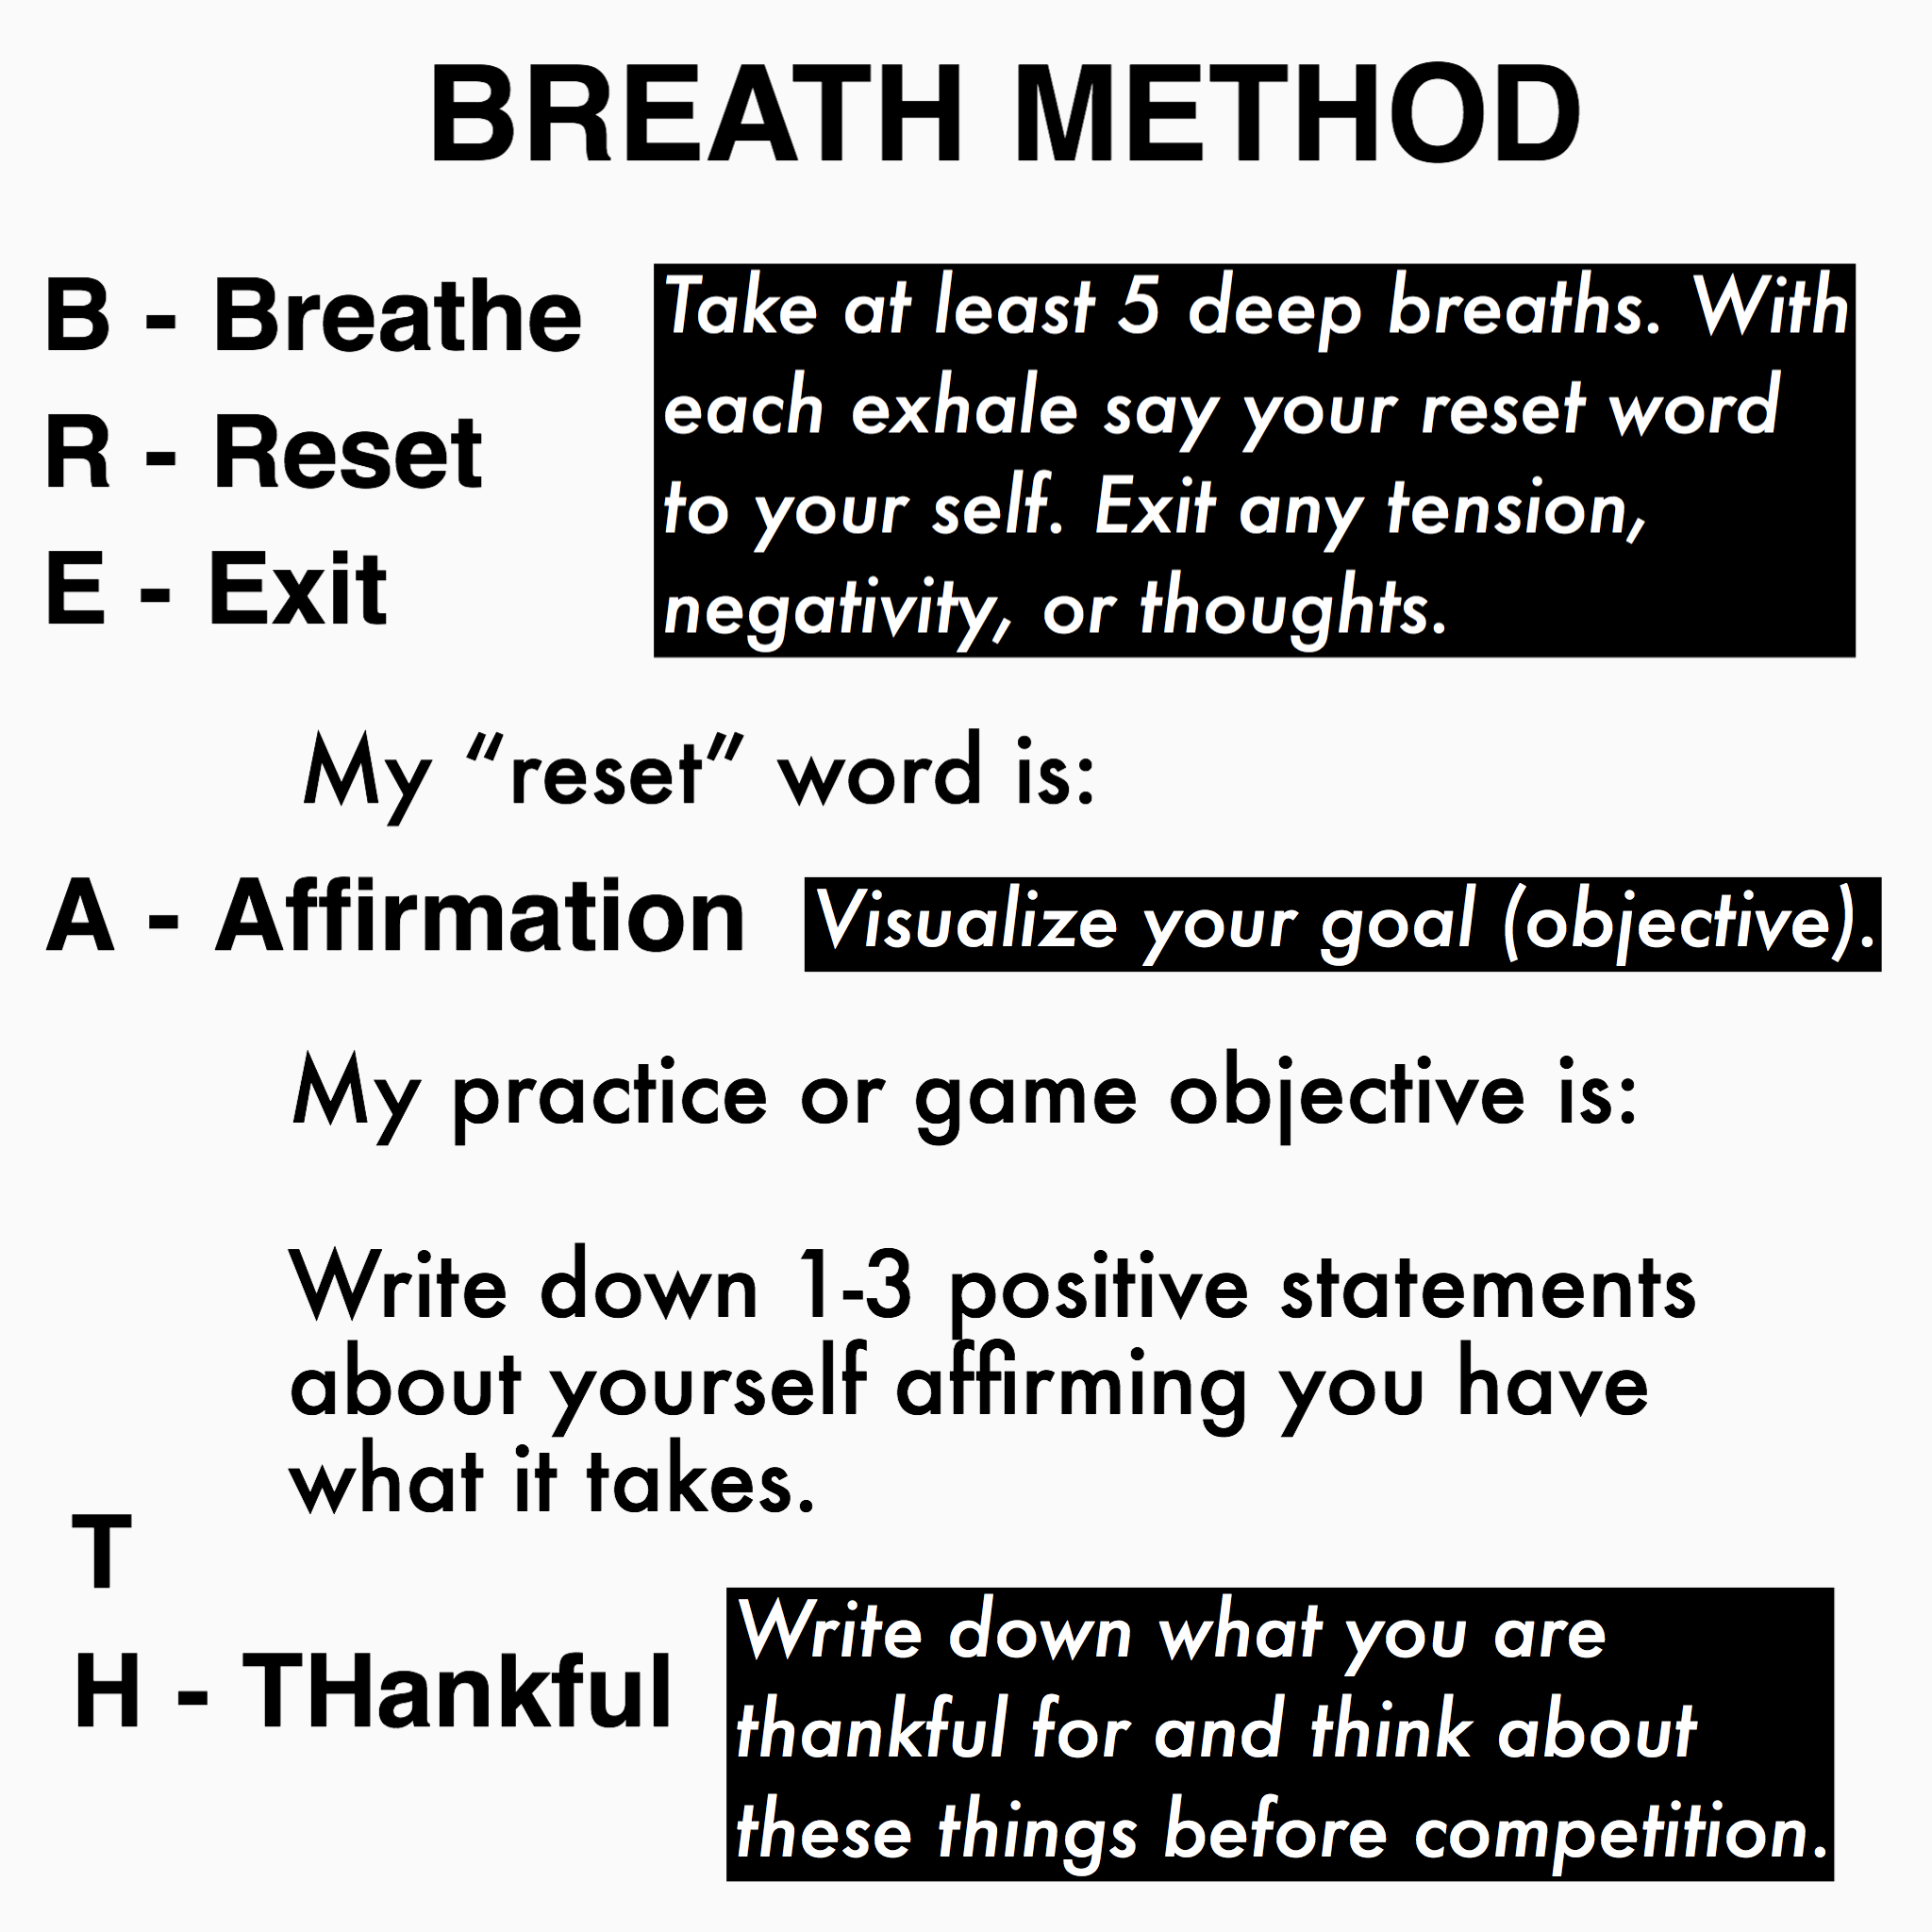 Have your athlete fill out a notecard following these prompts. They can use this as a reminder during their pregame visualization/mindfulness warmup.